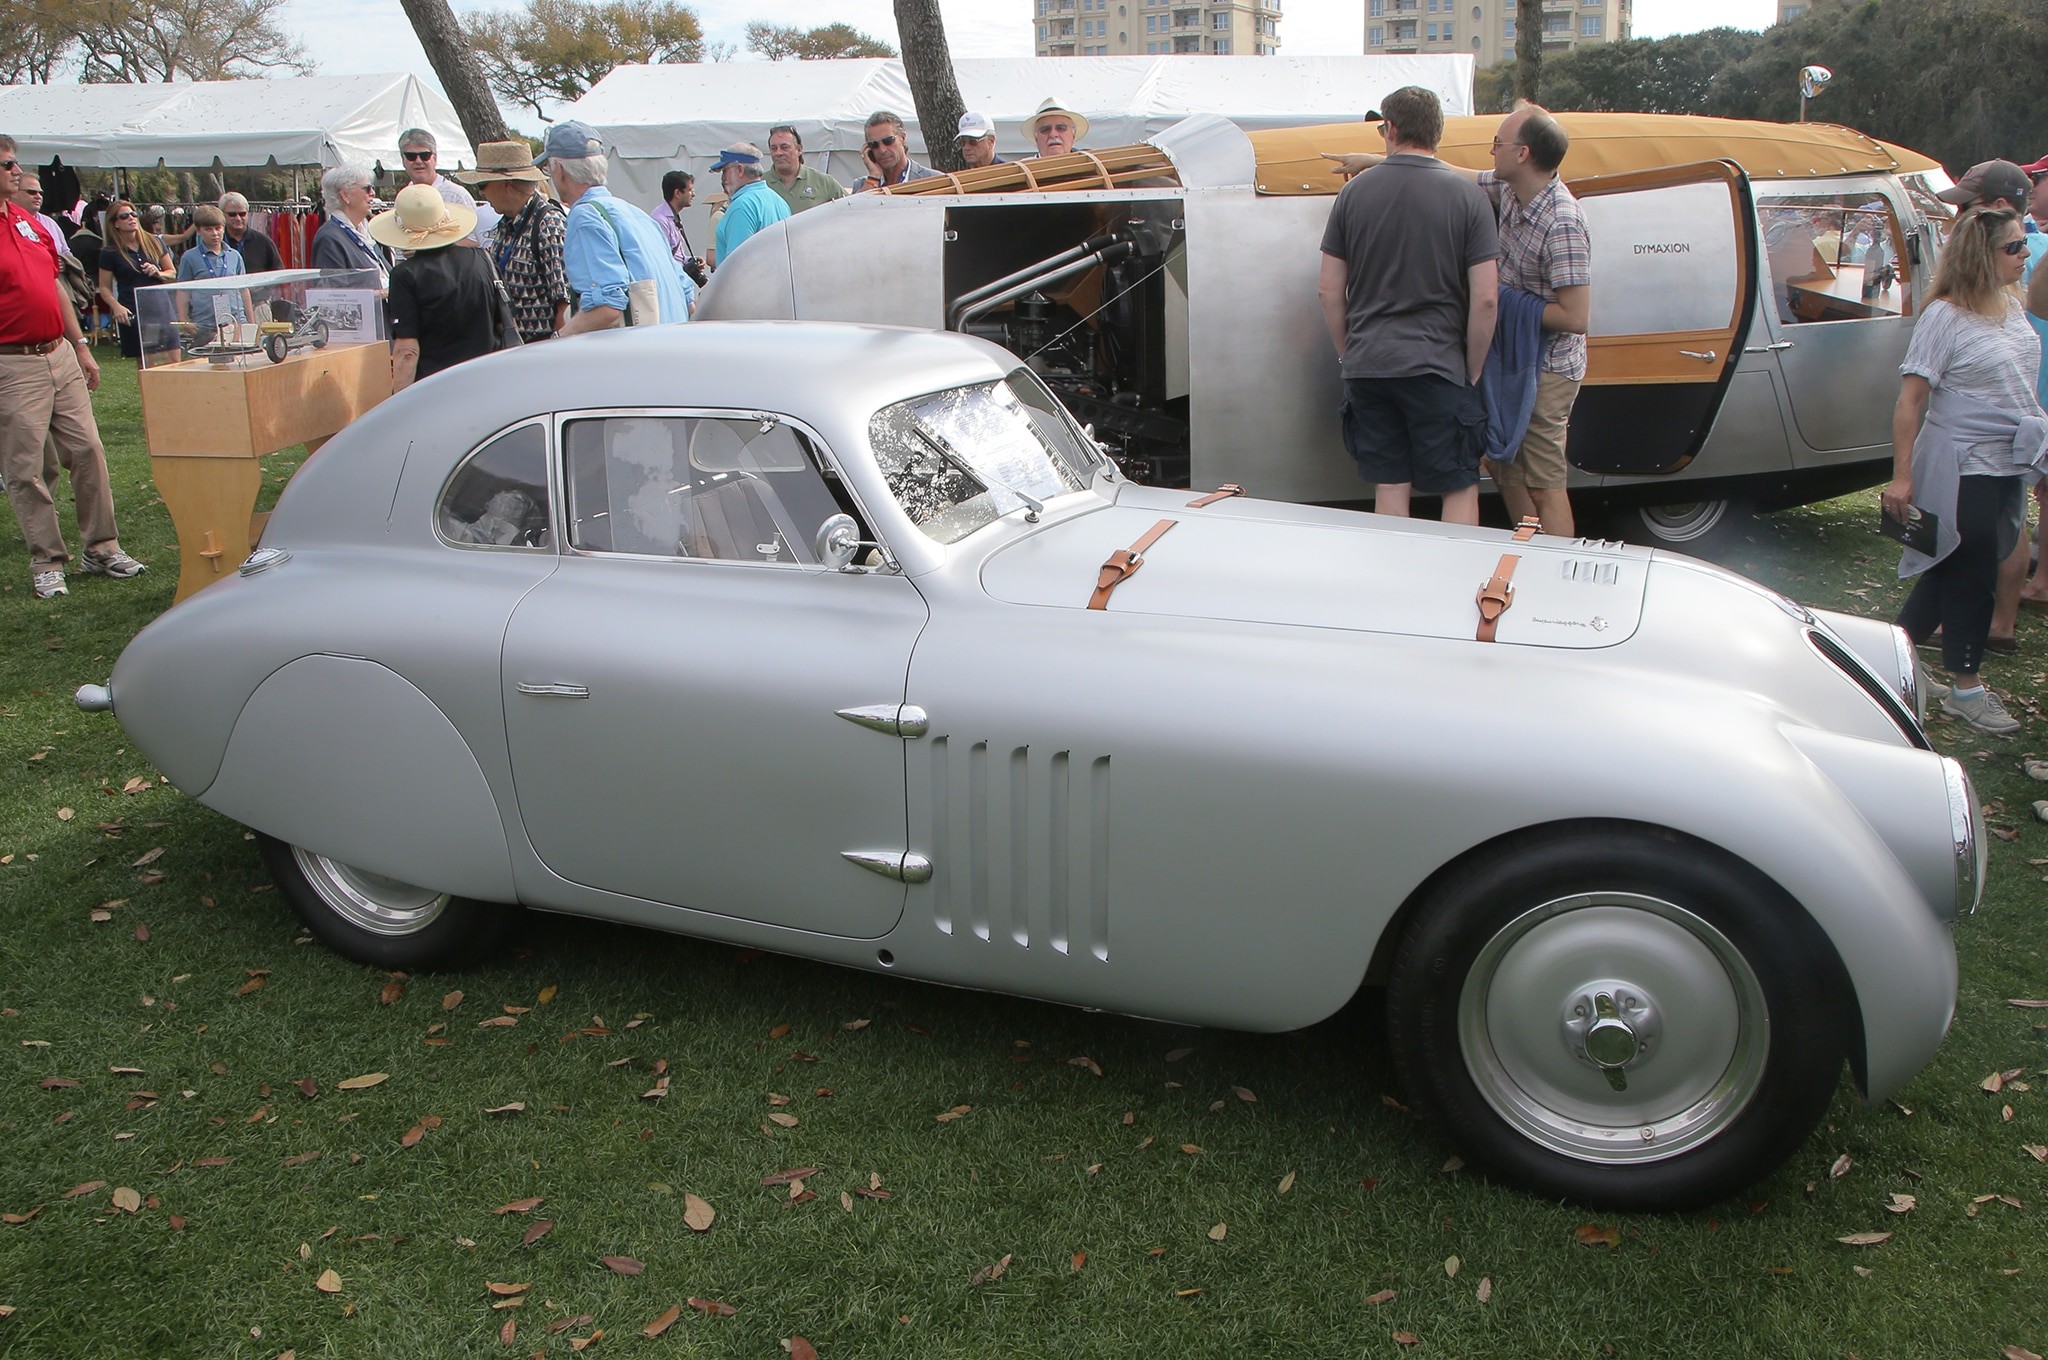 The 10 Coolest Cars at the 2015 Amelia Island Concours